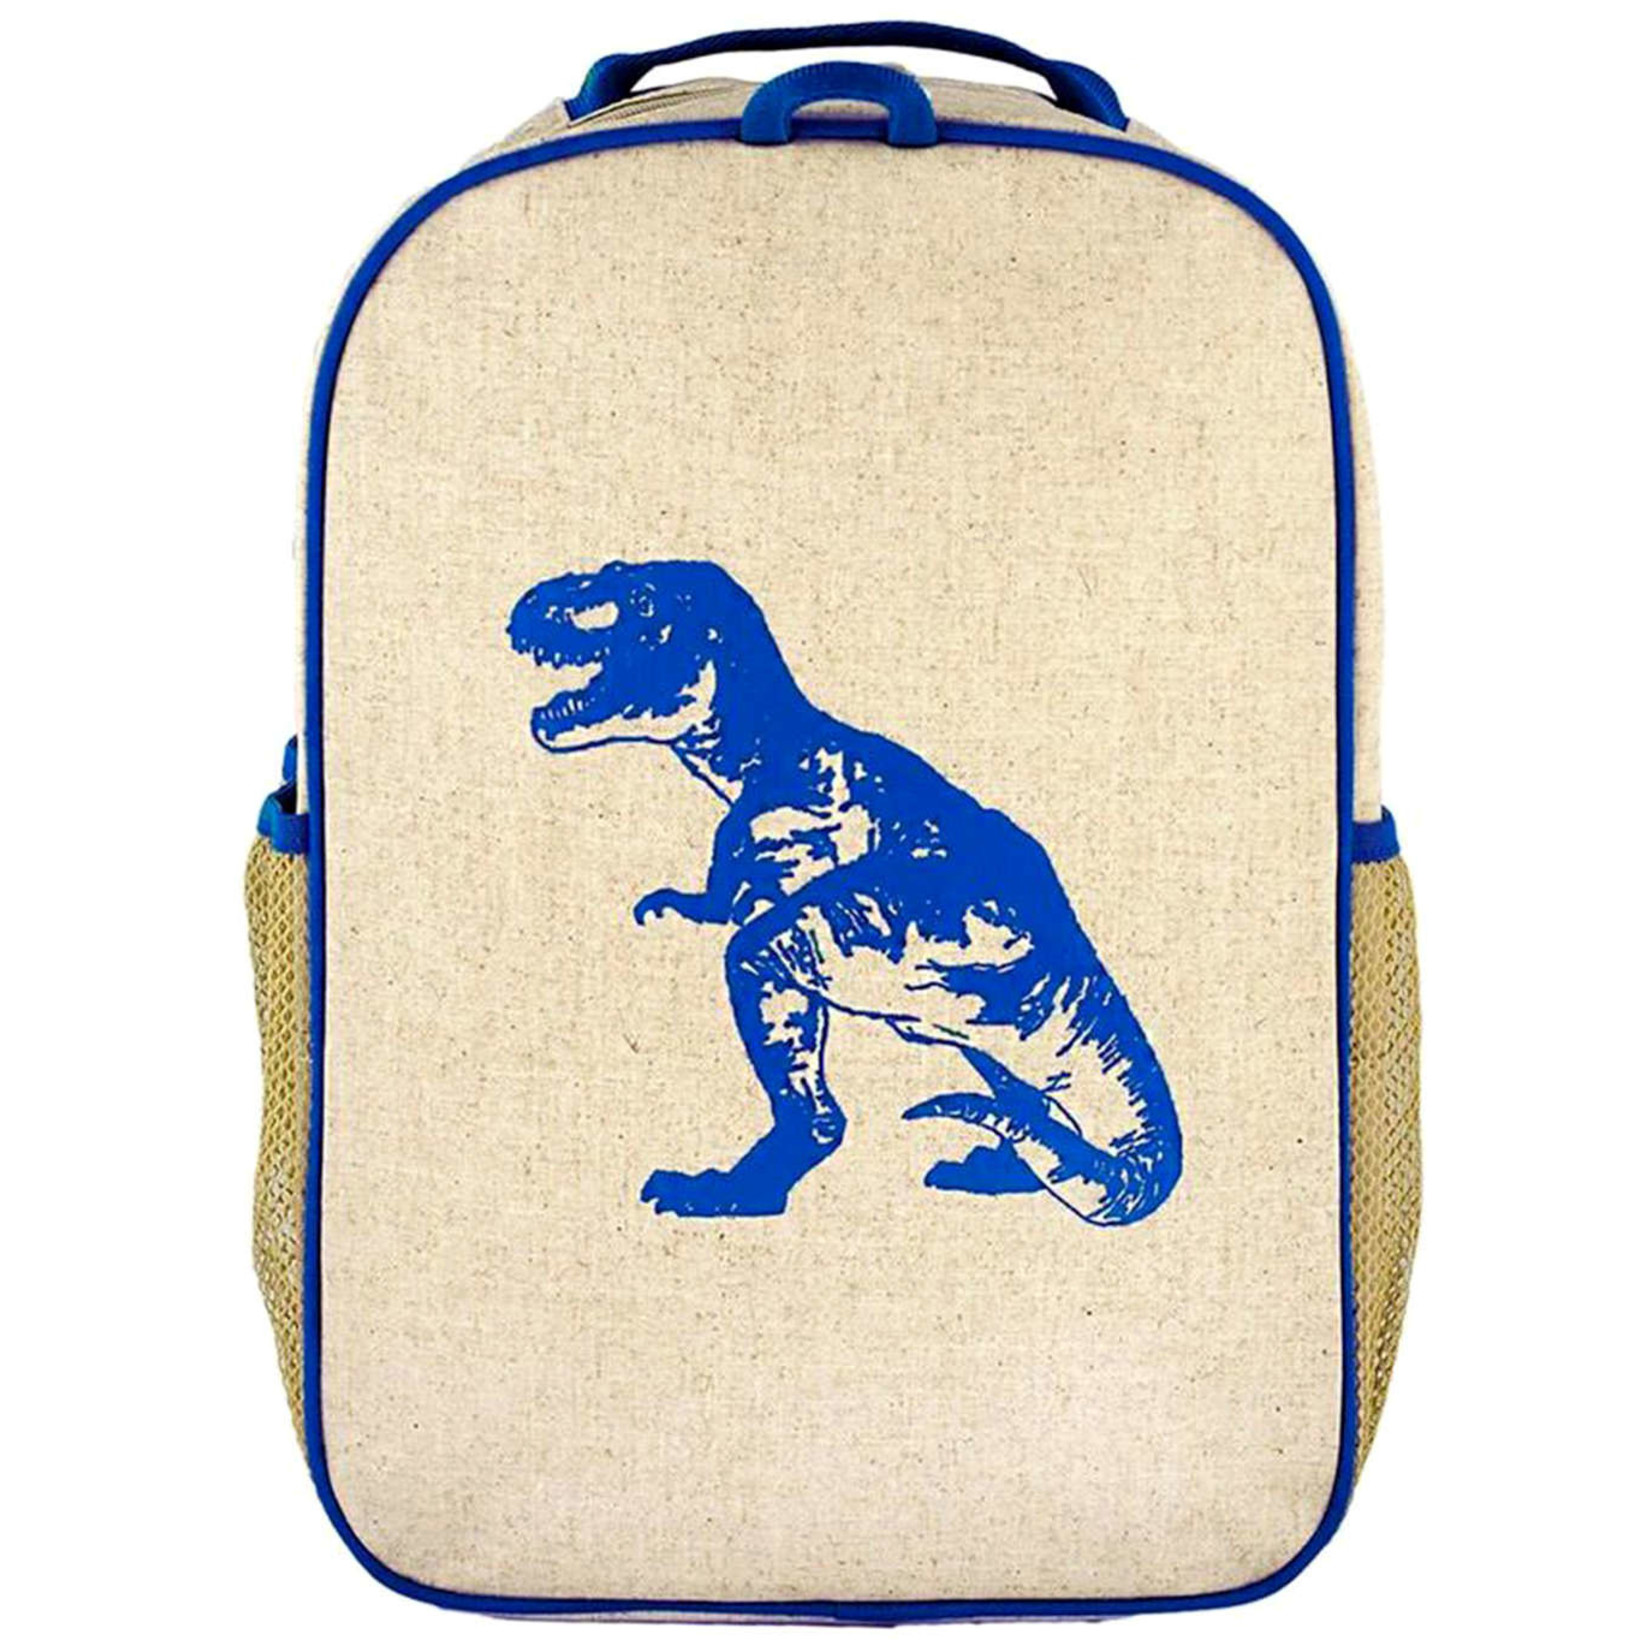 SOYOUNG BLUE DINO GRADE SCHOOL BACKPACK